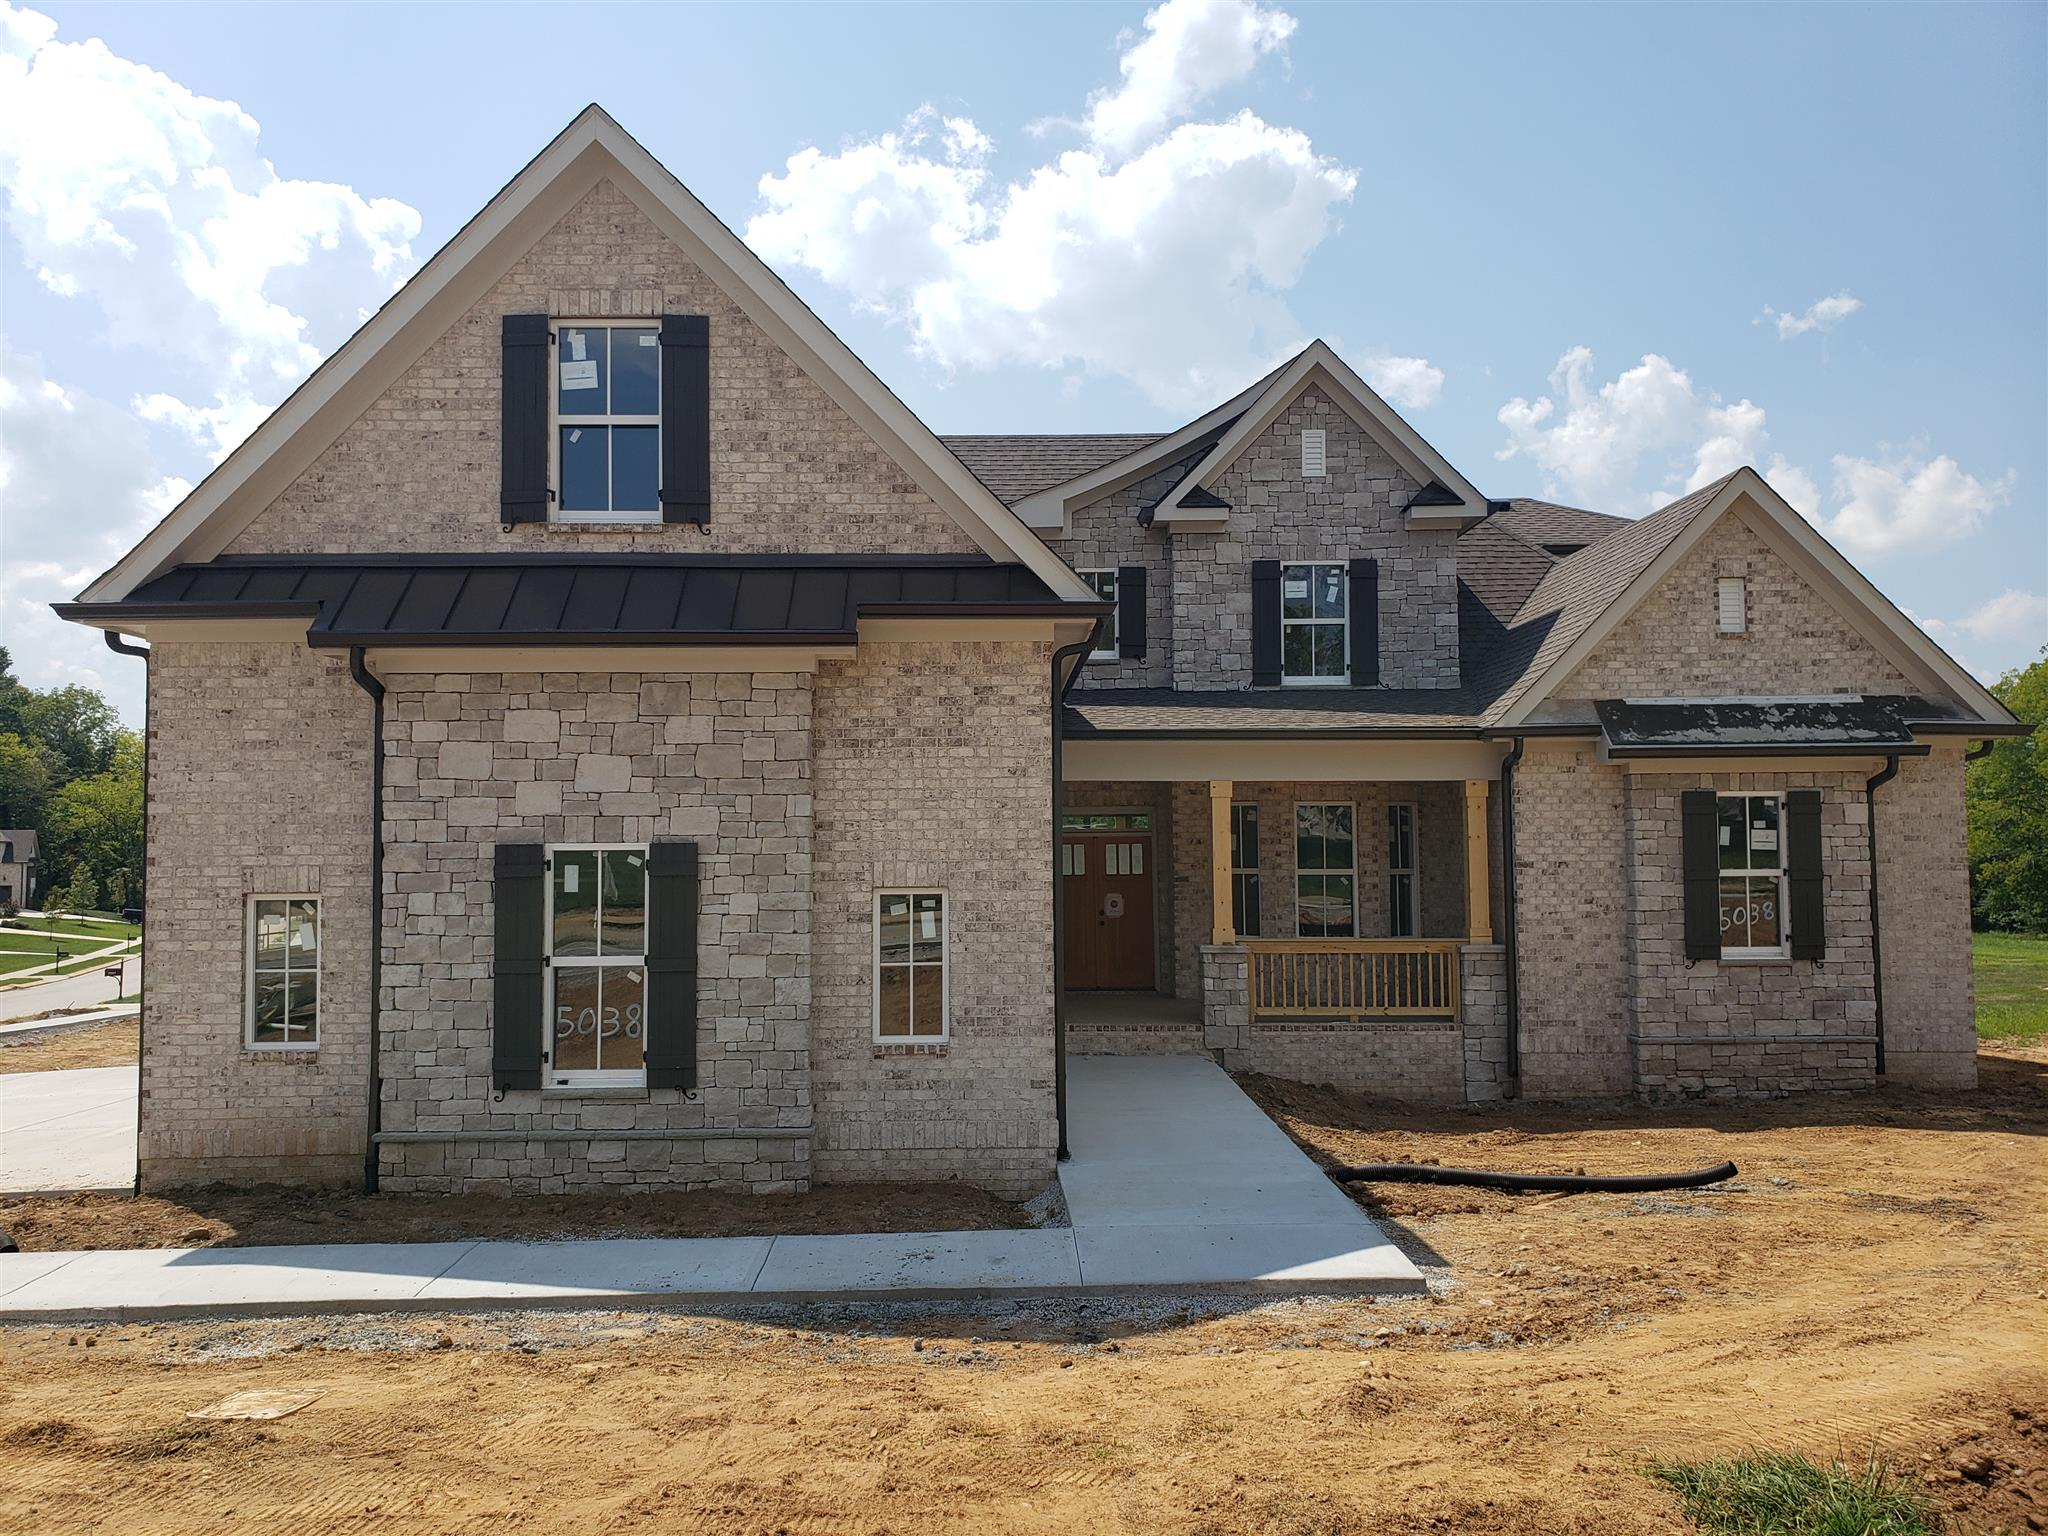 3691 Ronstadt Road - Lot 5038, Thompsons Station, TN 37179 - Thompsons Station, TN real estate listing